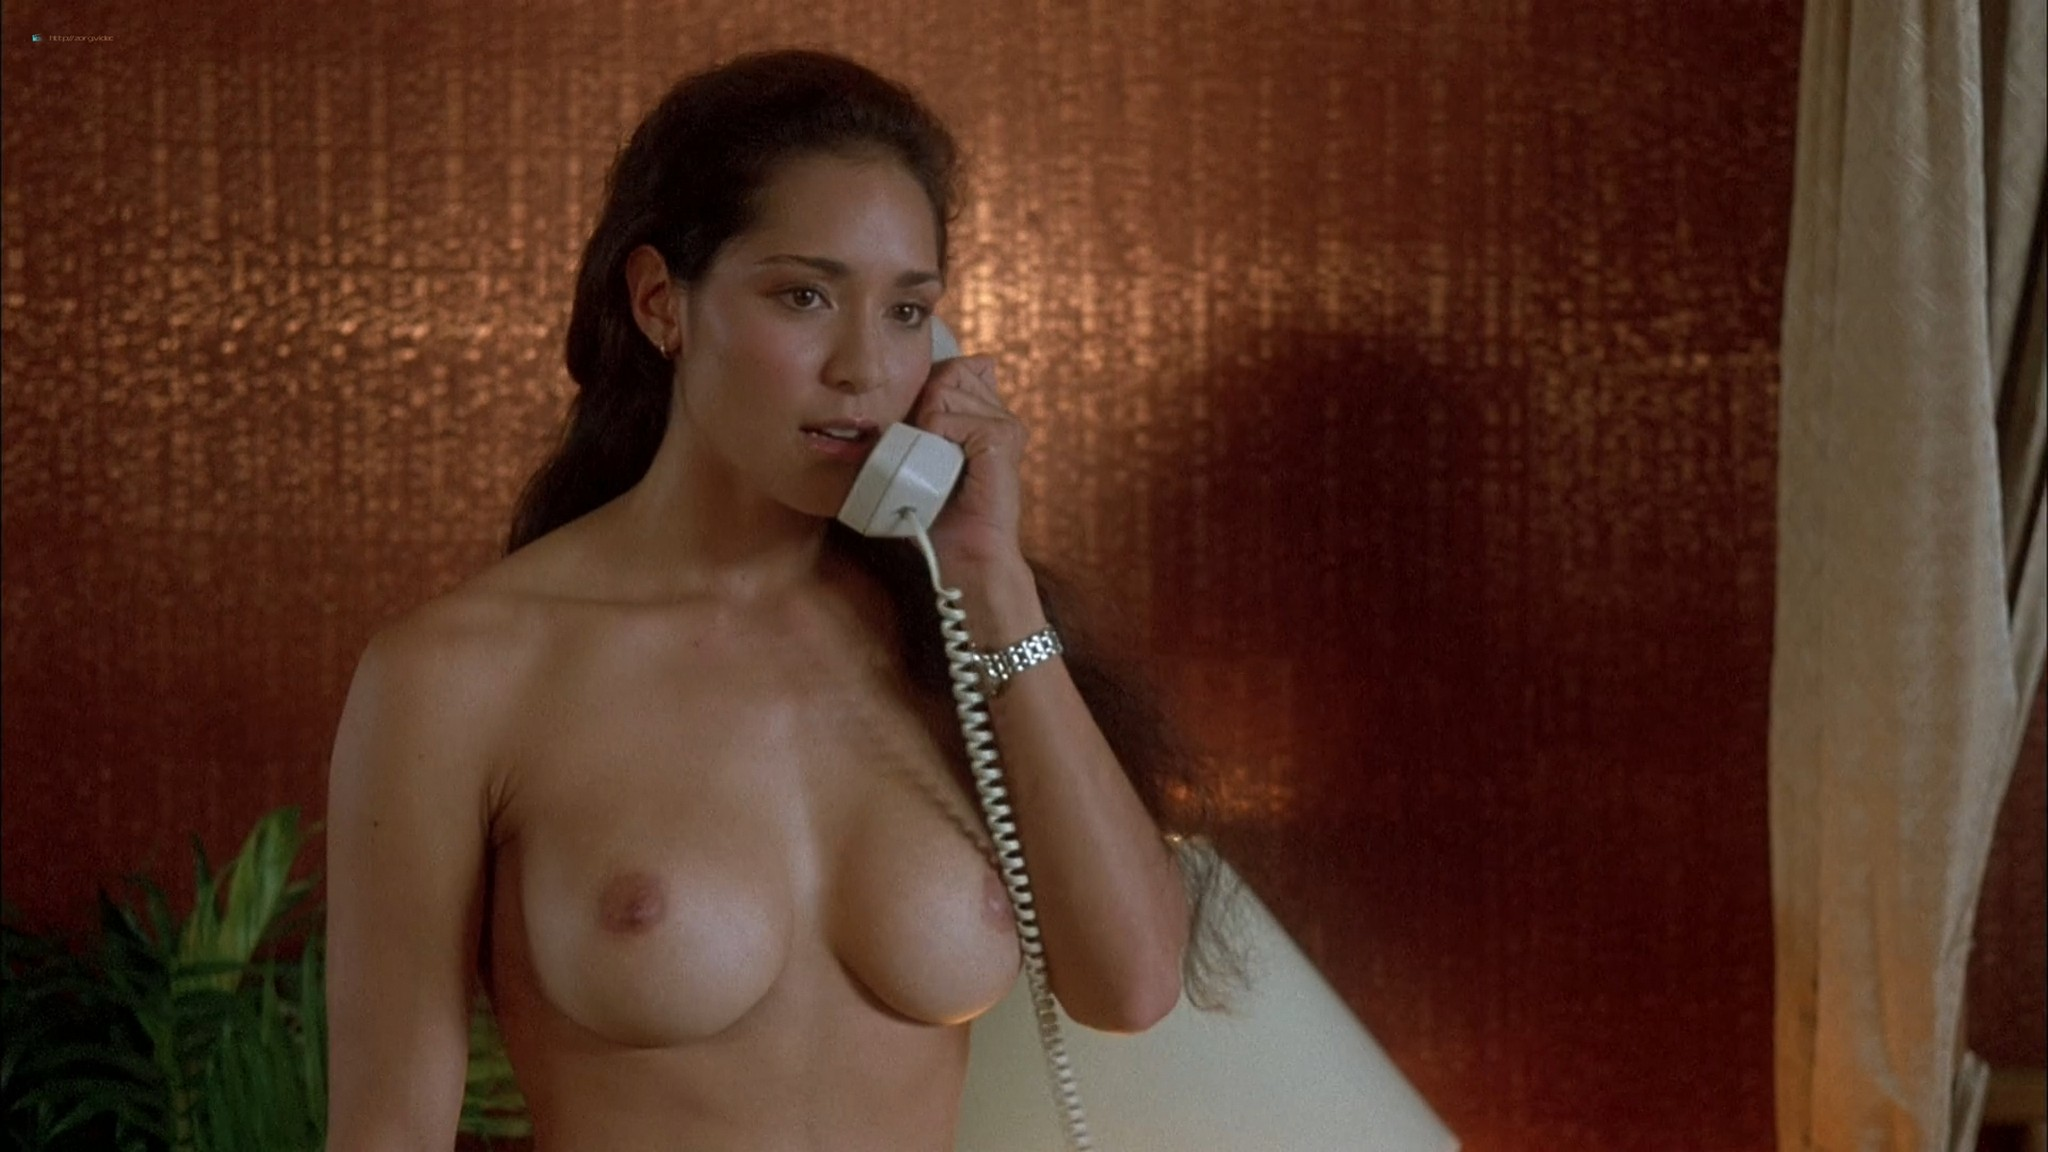 Kari Wuhrer wet and hot Amy Lindsay and others nude sex - Final Examination (2003) HD 1080p Web (10)